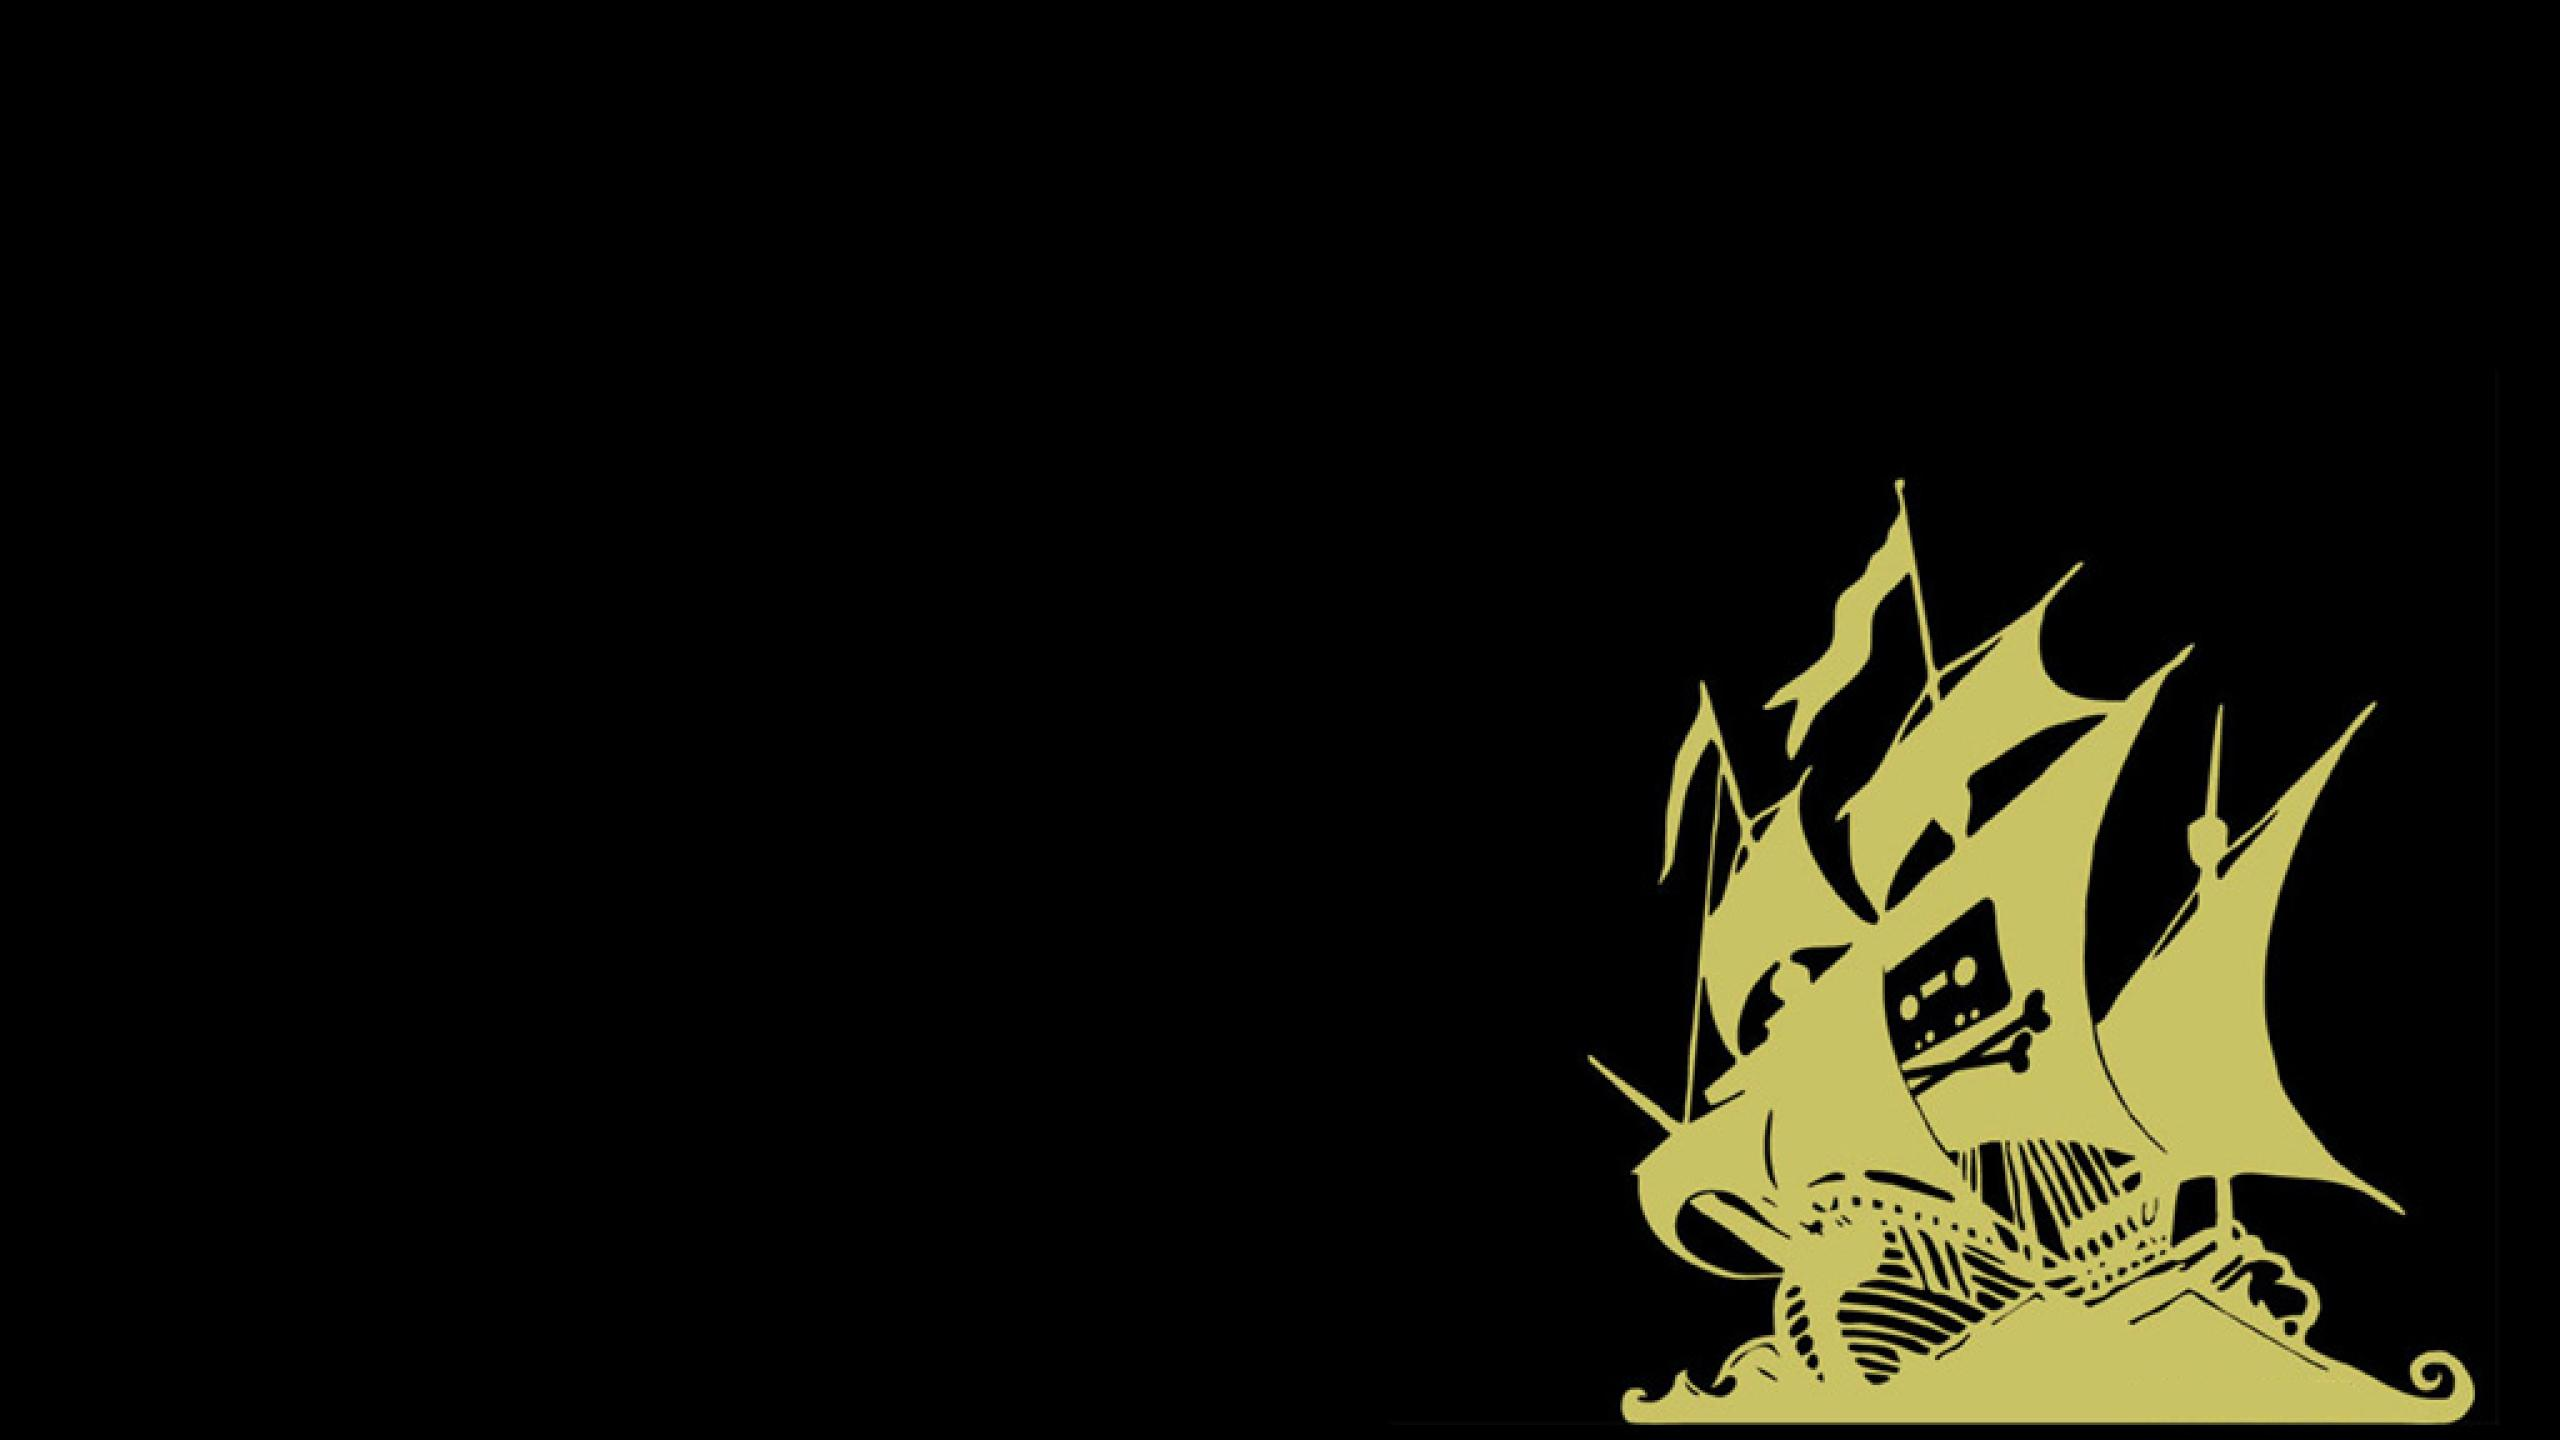 sails ship abstract black background Ultra or Dual High Definition 2560x1440